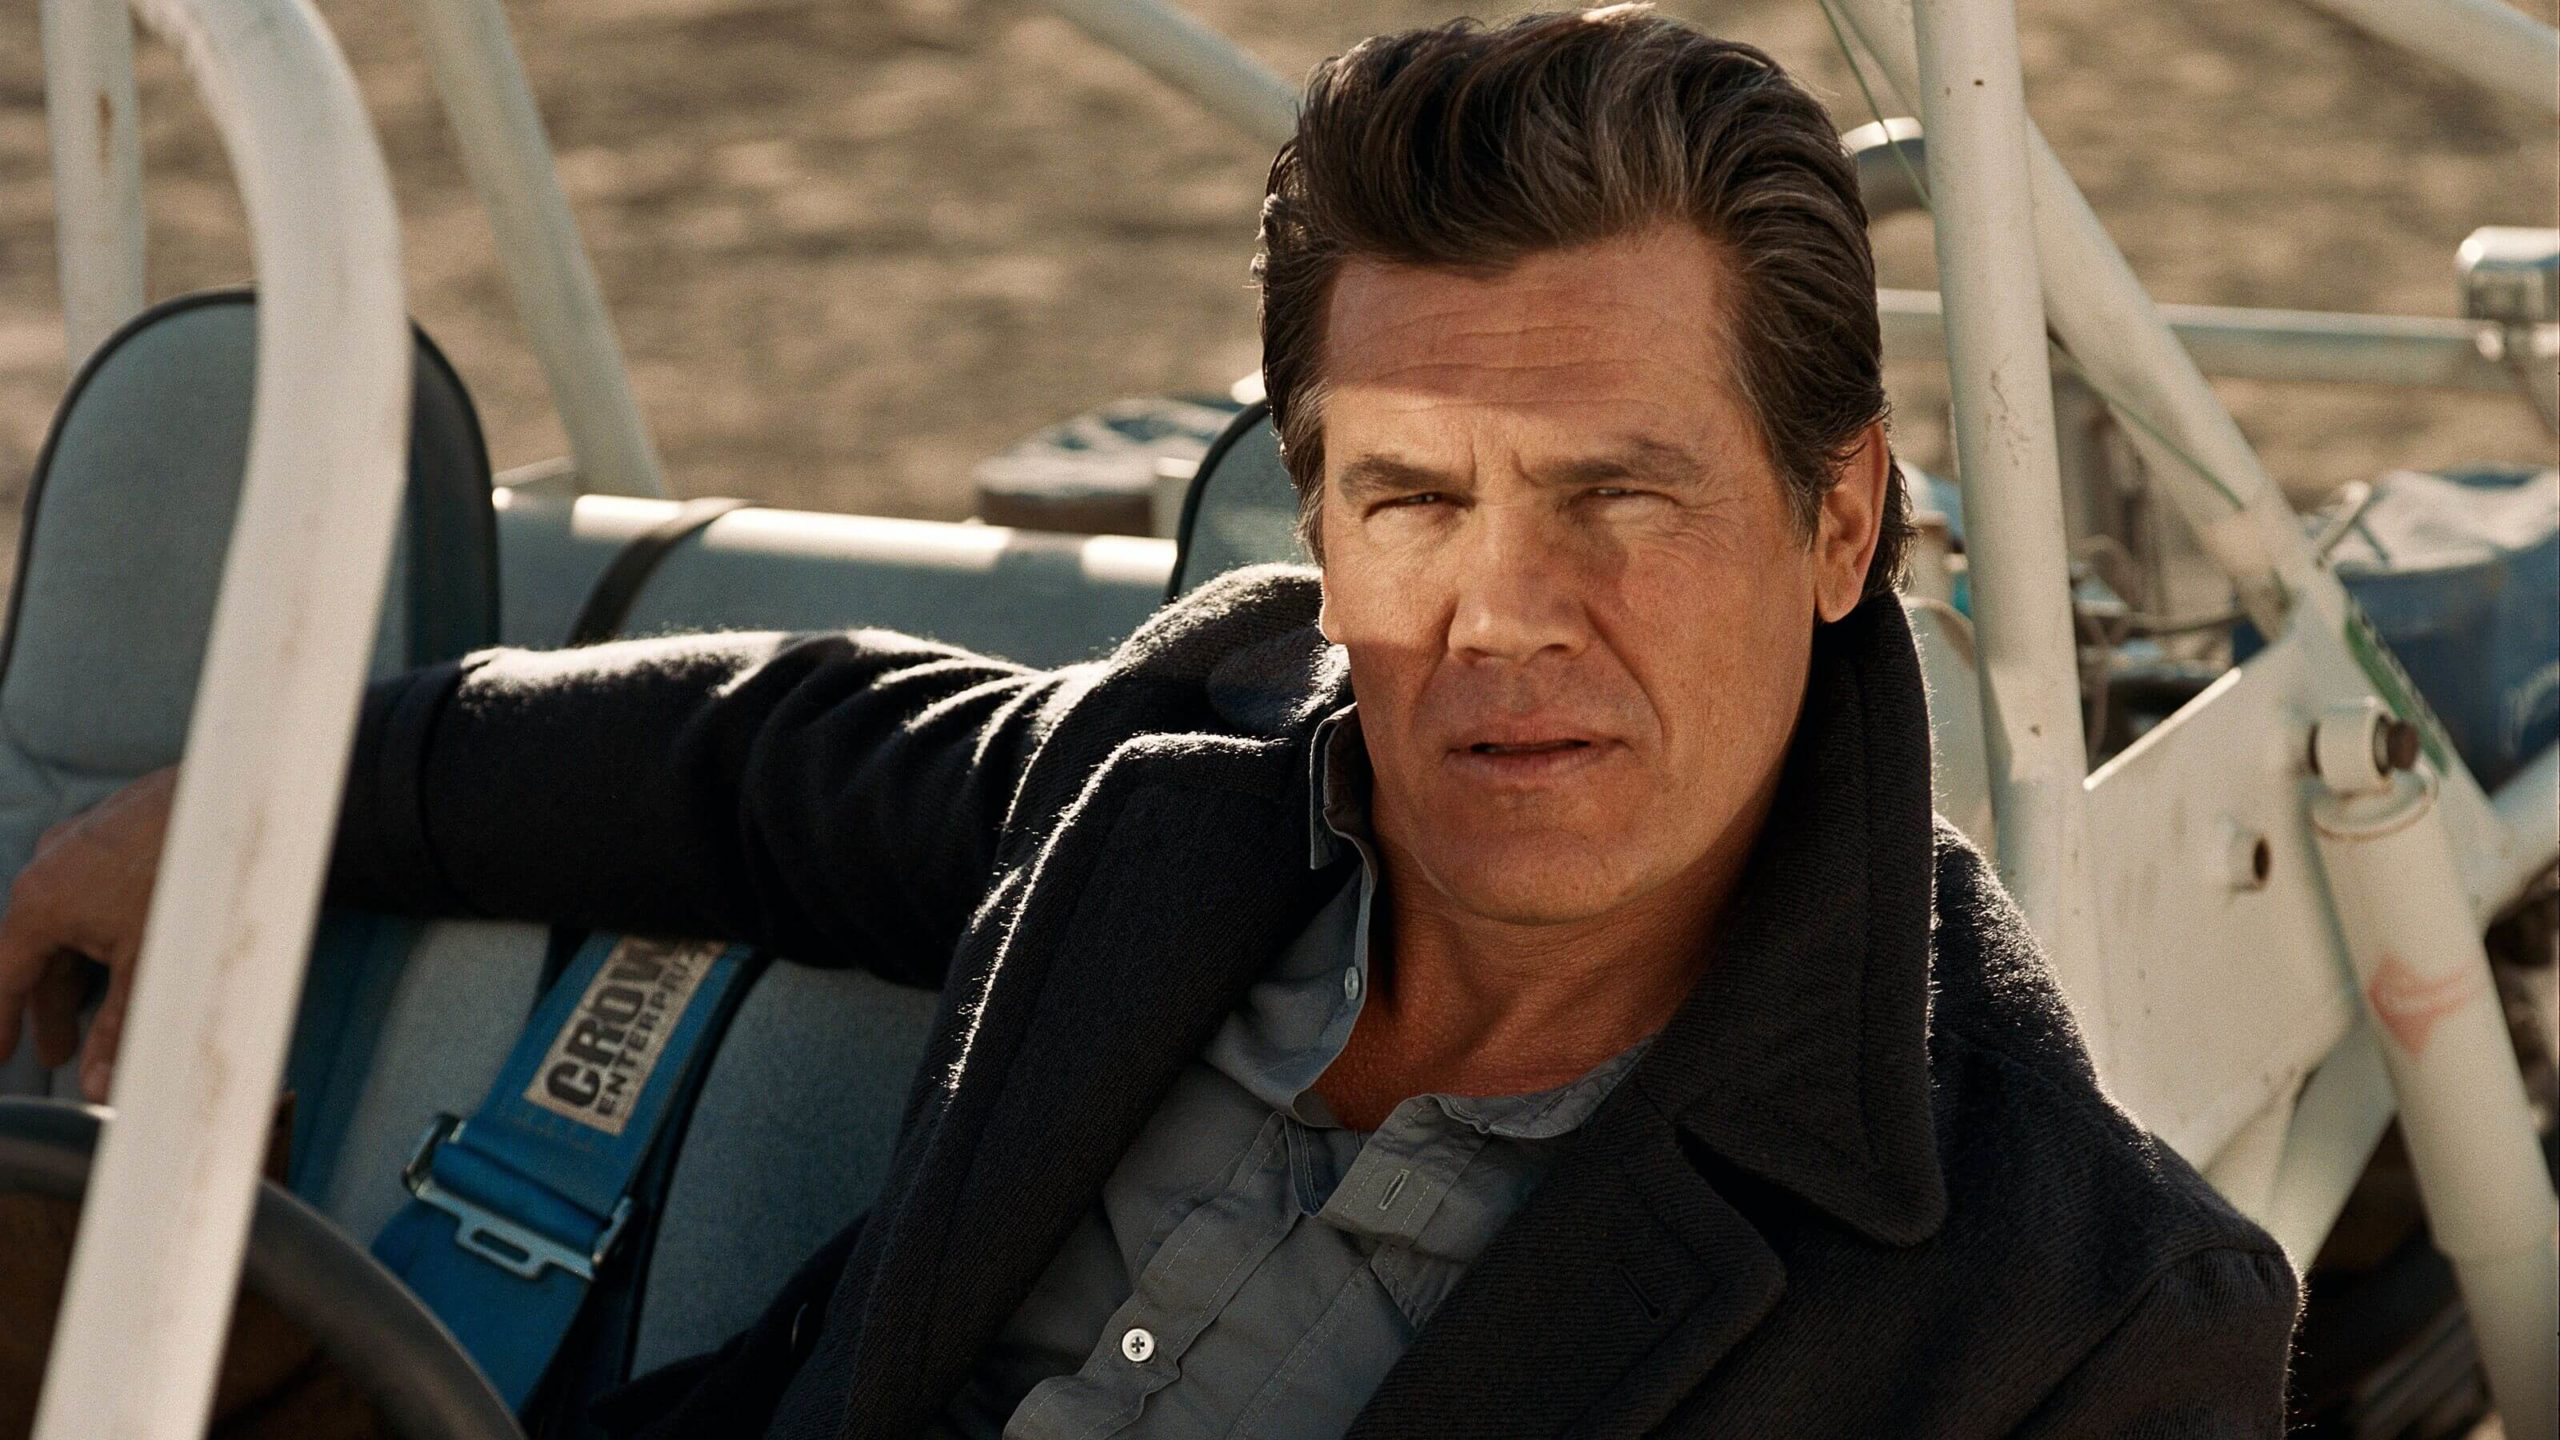 Josh Brolin Movies, Thanos, Height, Net Worth, Wife, Age, Mother, Kids, Haircut, Images, Daughter, Birthday, Biography, Married, Awards, Instagram, Imdb, Wiki, Facebook, Twitter (5) (1) class=